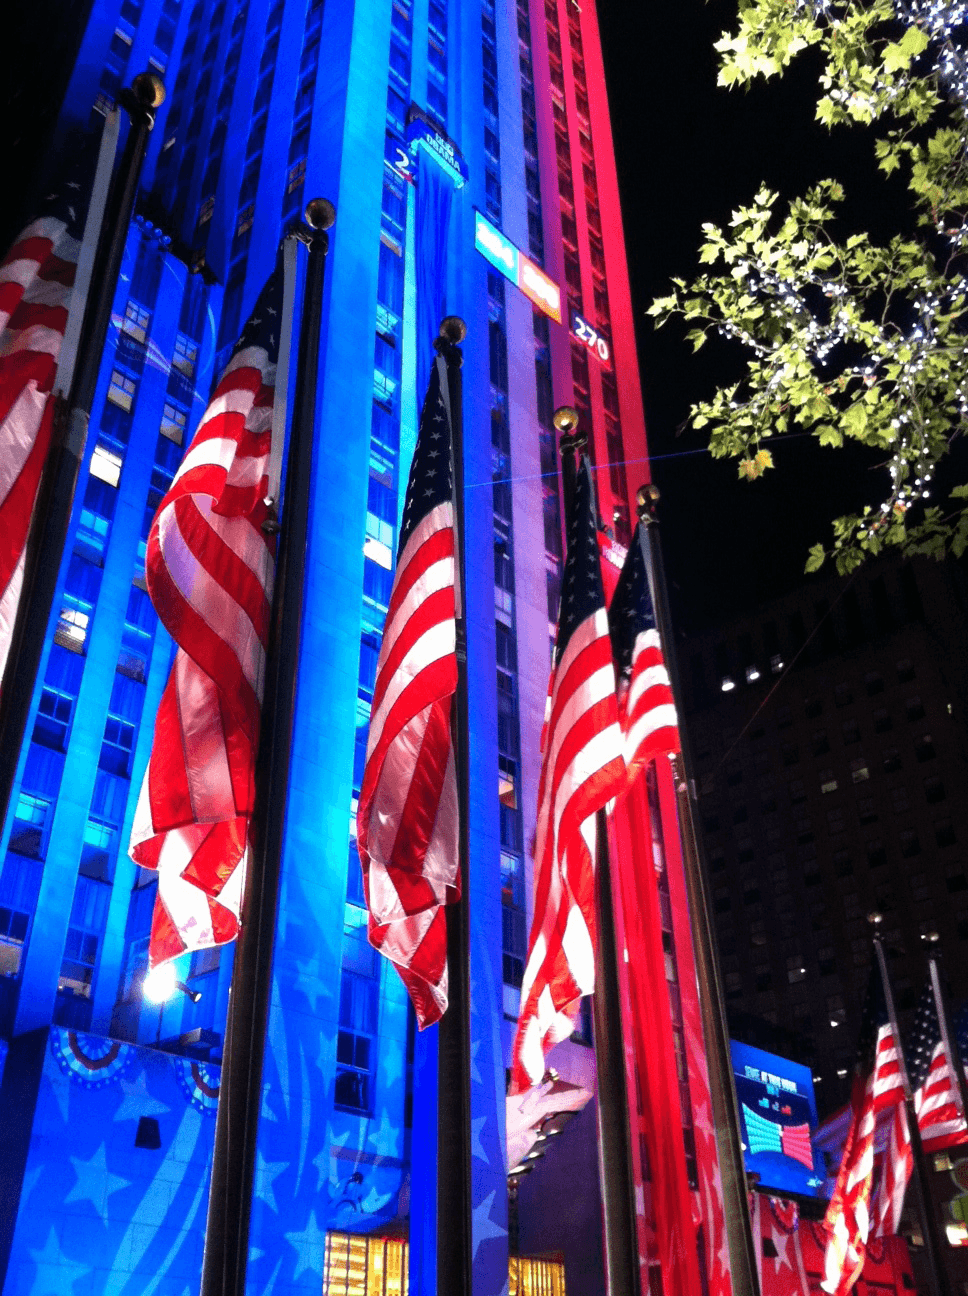 NBC's Democracy Plaza event at Rockefeller Center has National Flag & Display produce the flags and blue and red fabric that is travelling up the buildings